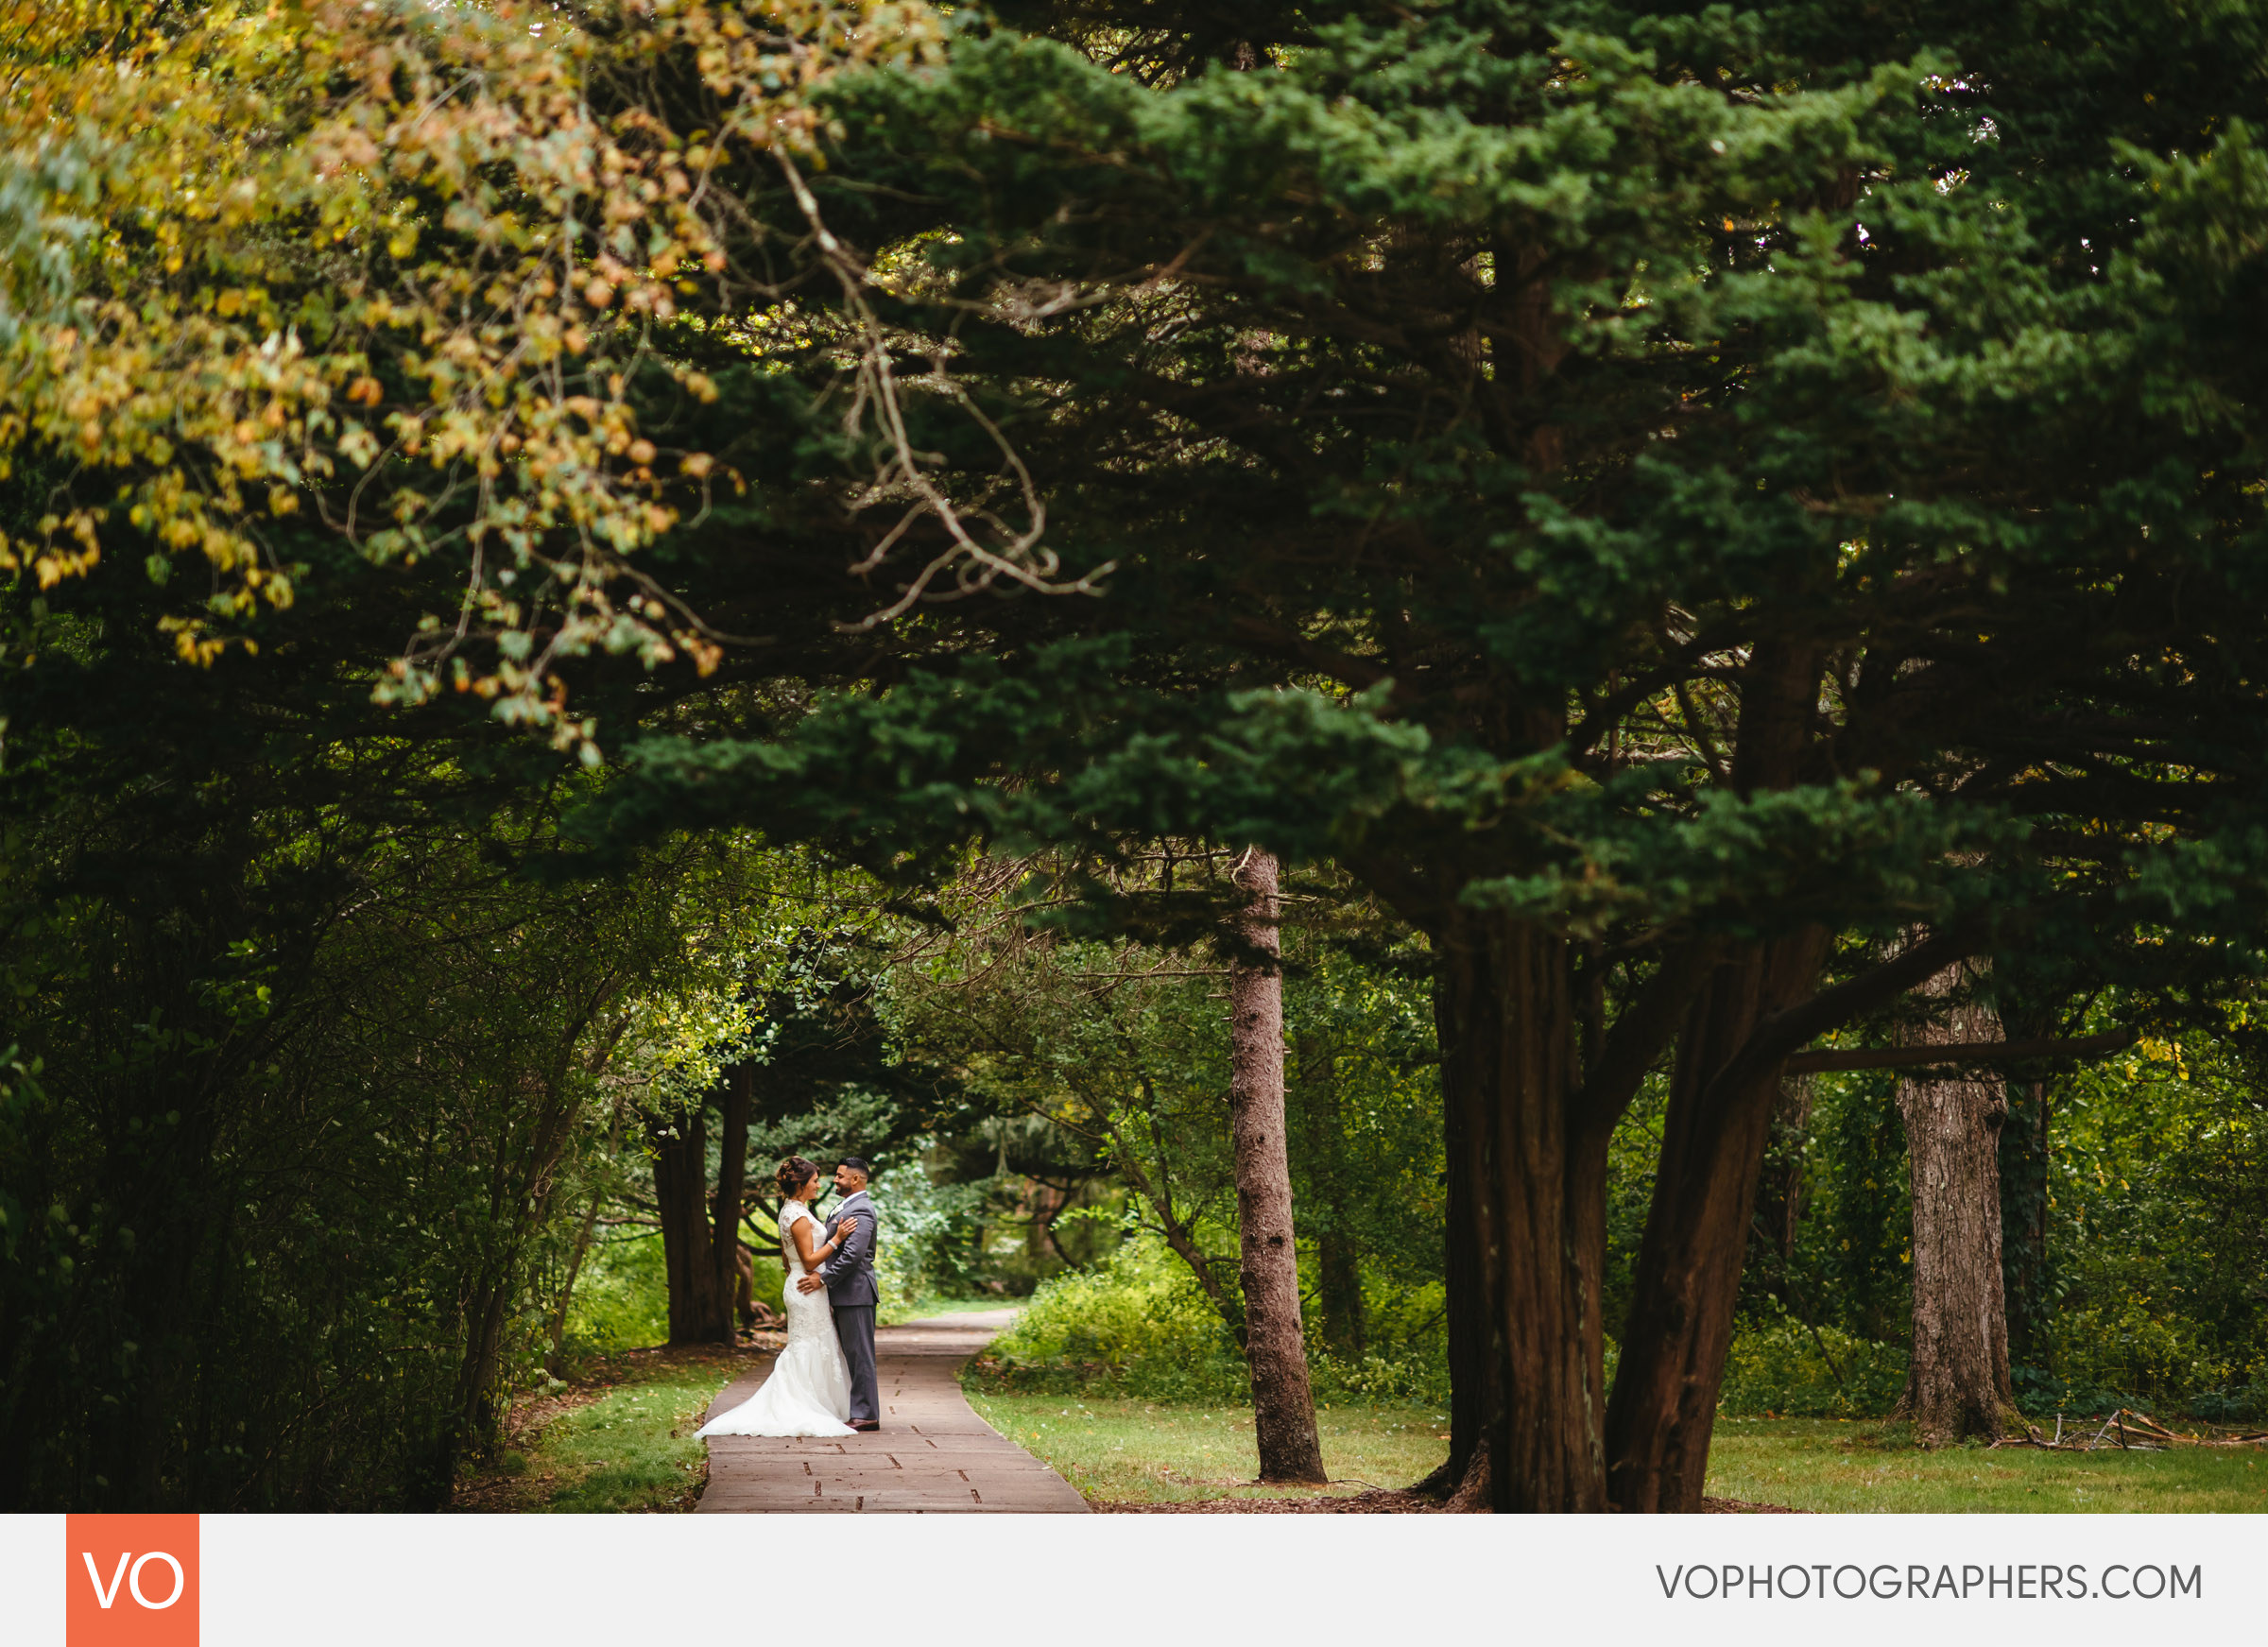 Oriana-Barem-Lakeview-Pavilion-Wedding-0019